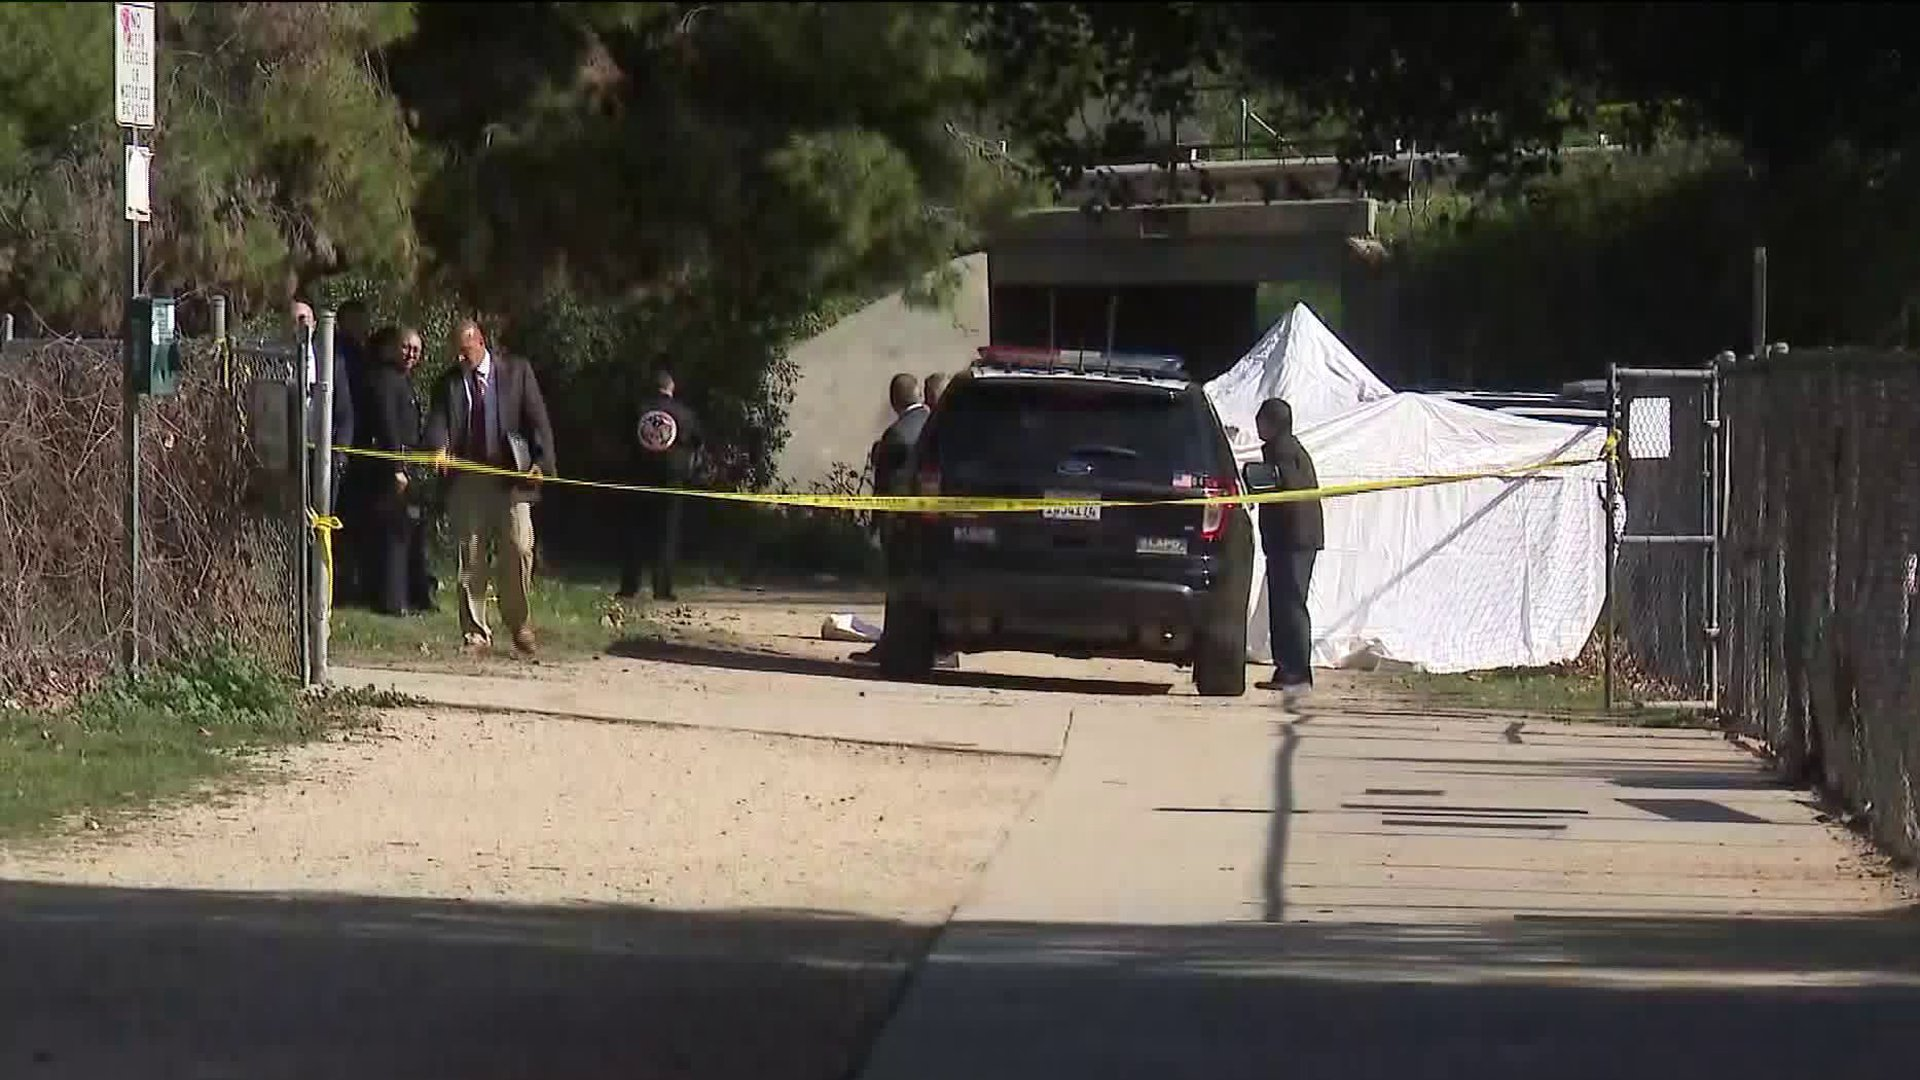 A shooting investigation was underway in Montecito Heights on Feb. 12, 2020. (Credit: KTLA)